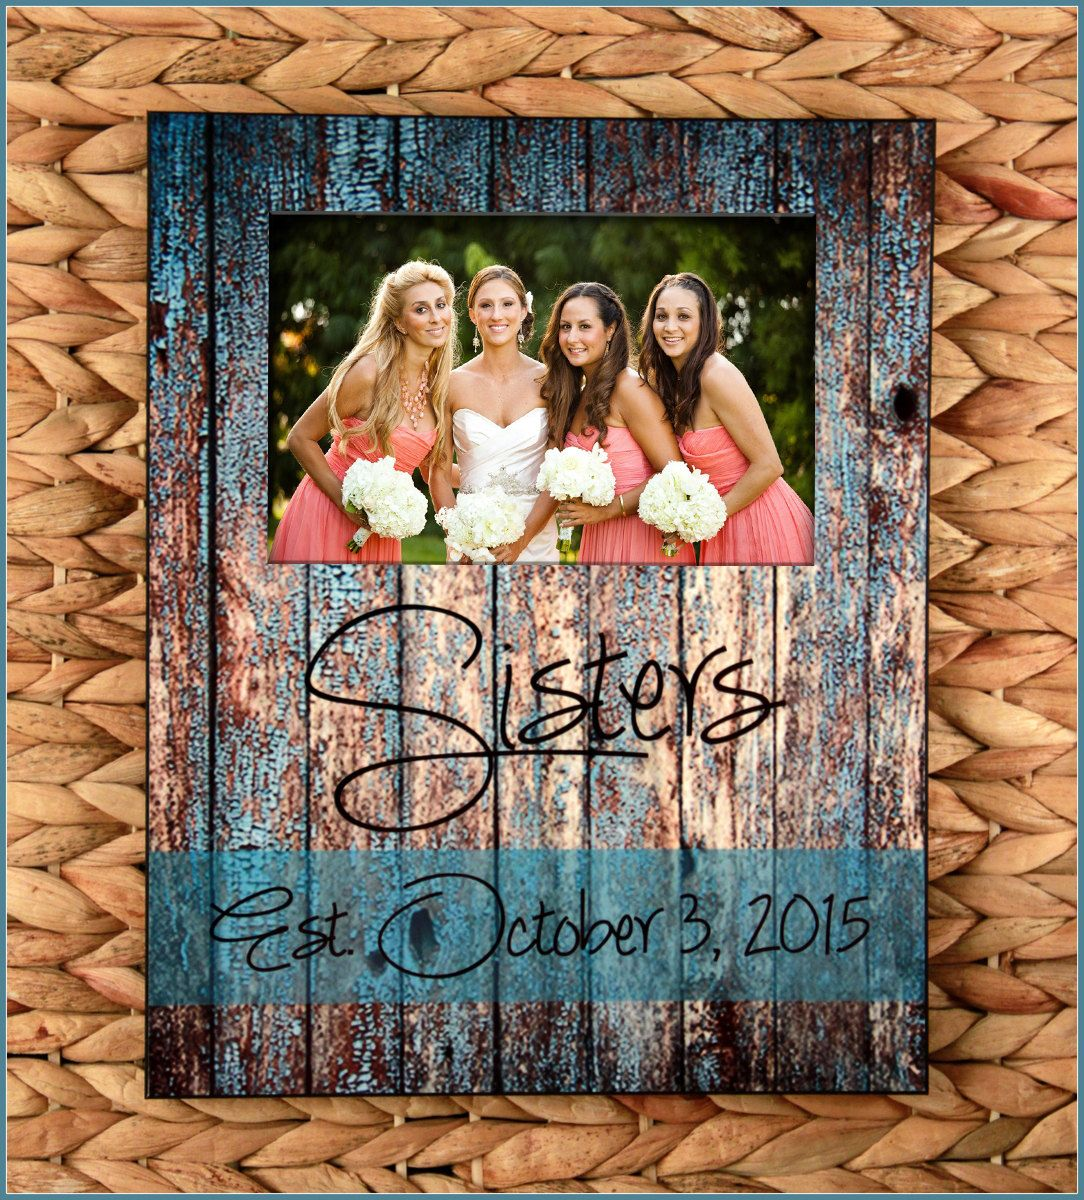 Gift For Sister In Law Wedding: Sisters Custom Photo Frame, New Sister In Law Gift